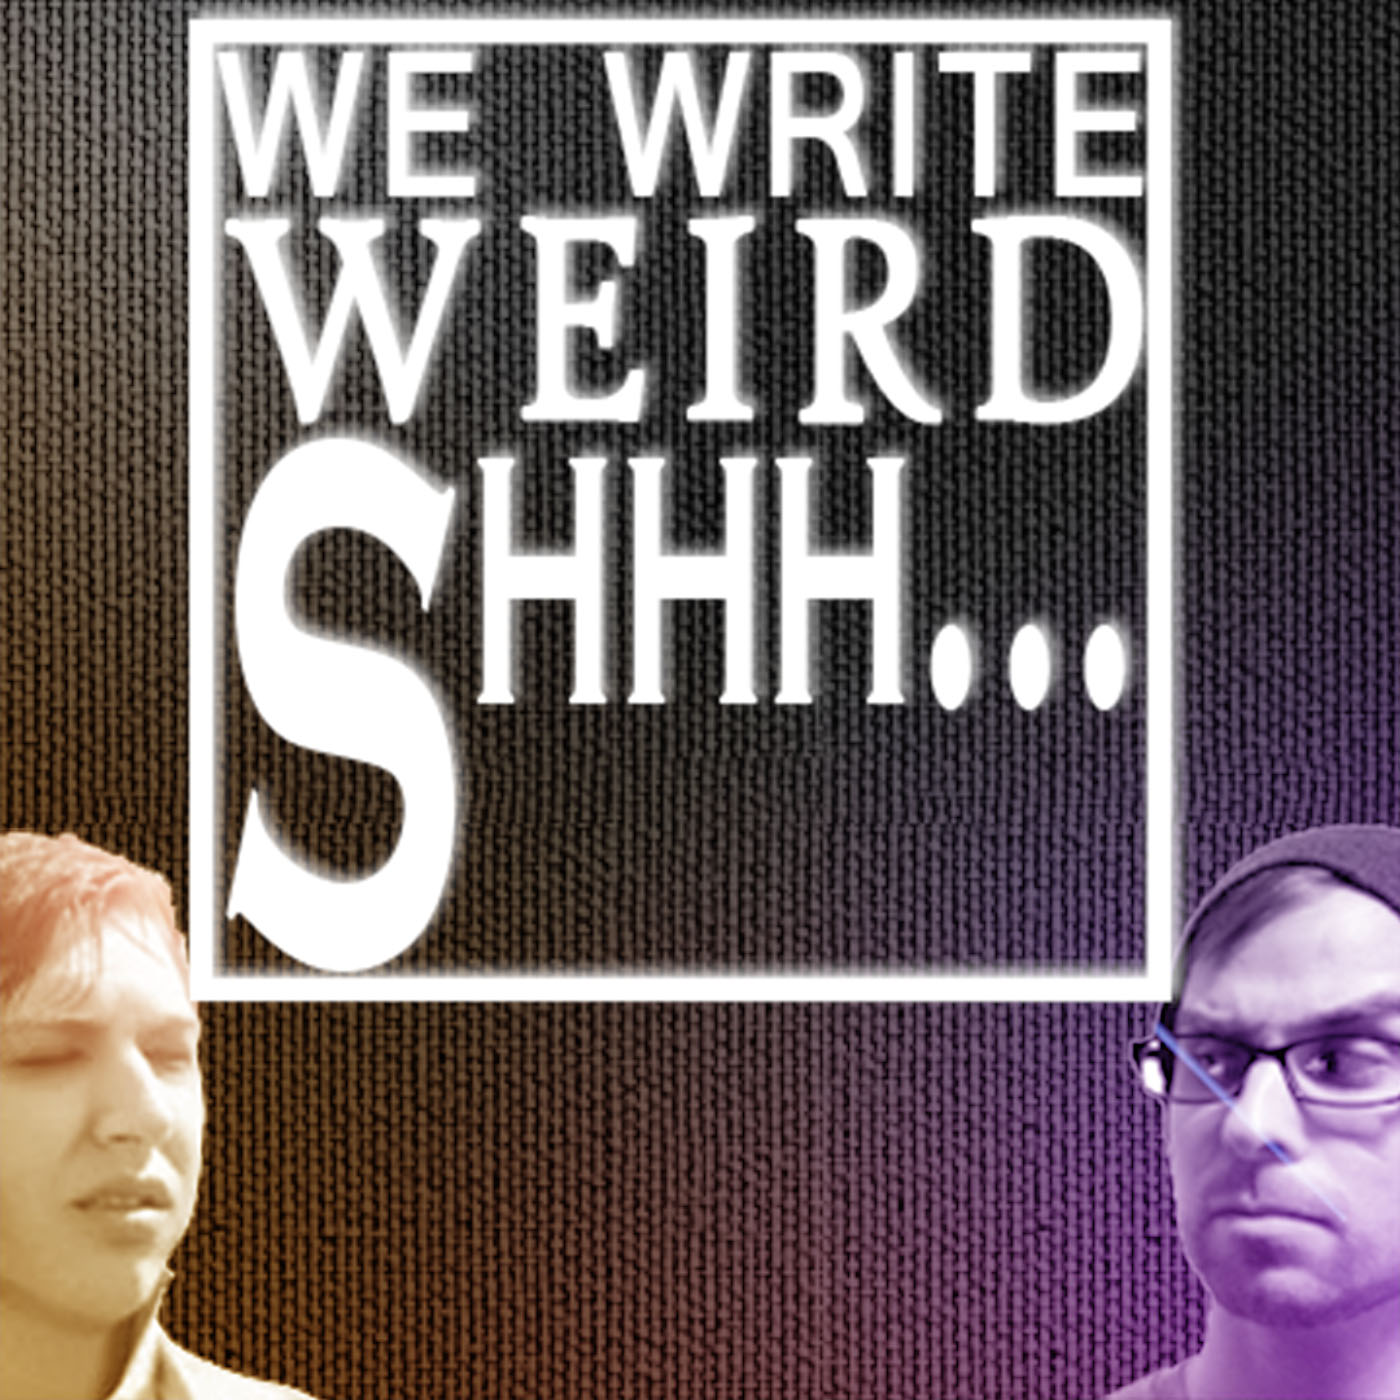 We Write Weird Shhh...